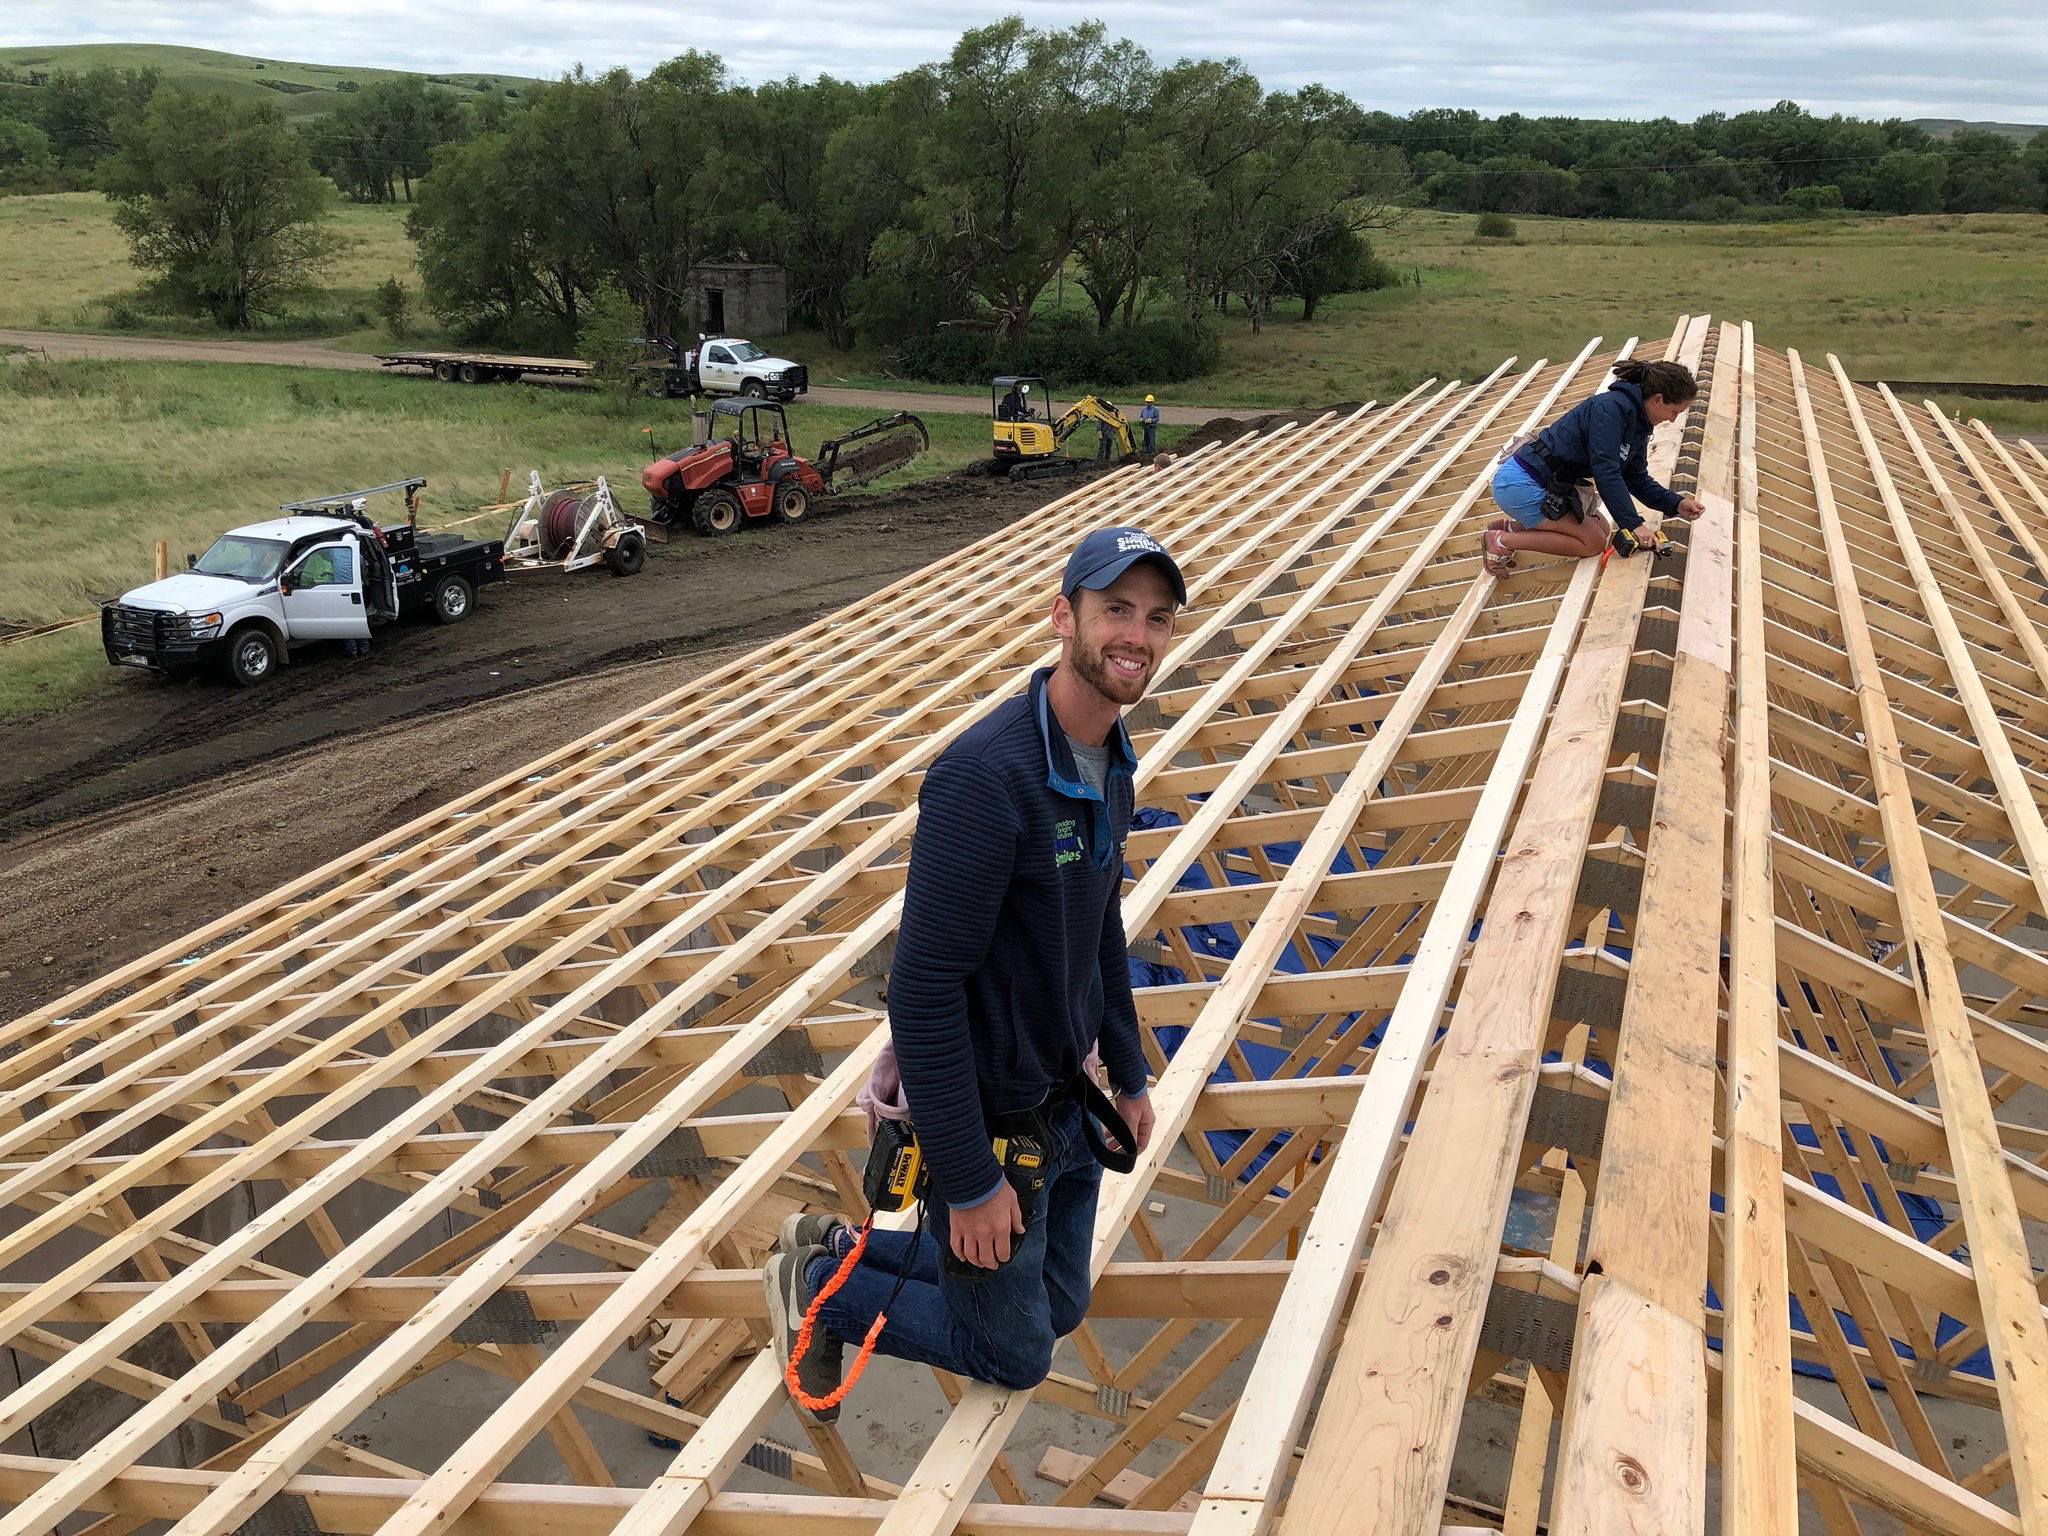 8/13/19: Simply Smiles staff members are hands on throughout the construction progress. Here, Zach and Kristen continue spacing of the purlins for the roof. The building is taking shape!